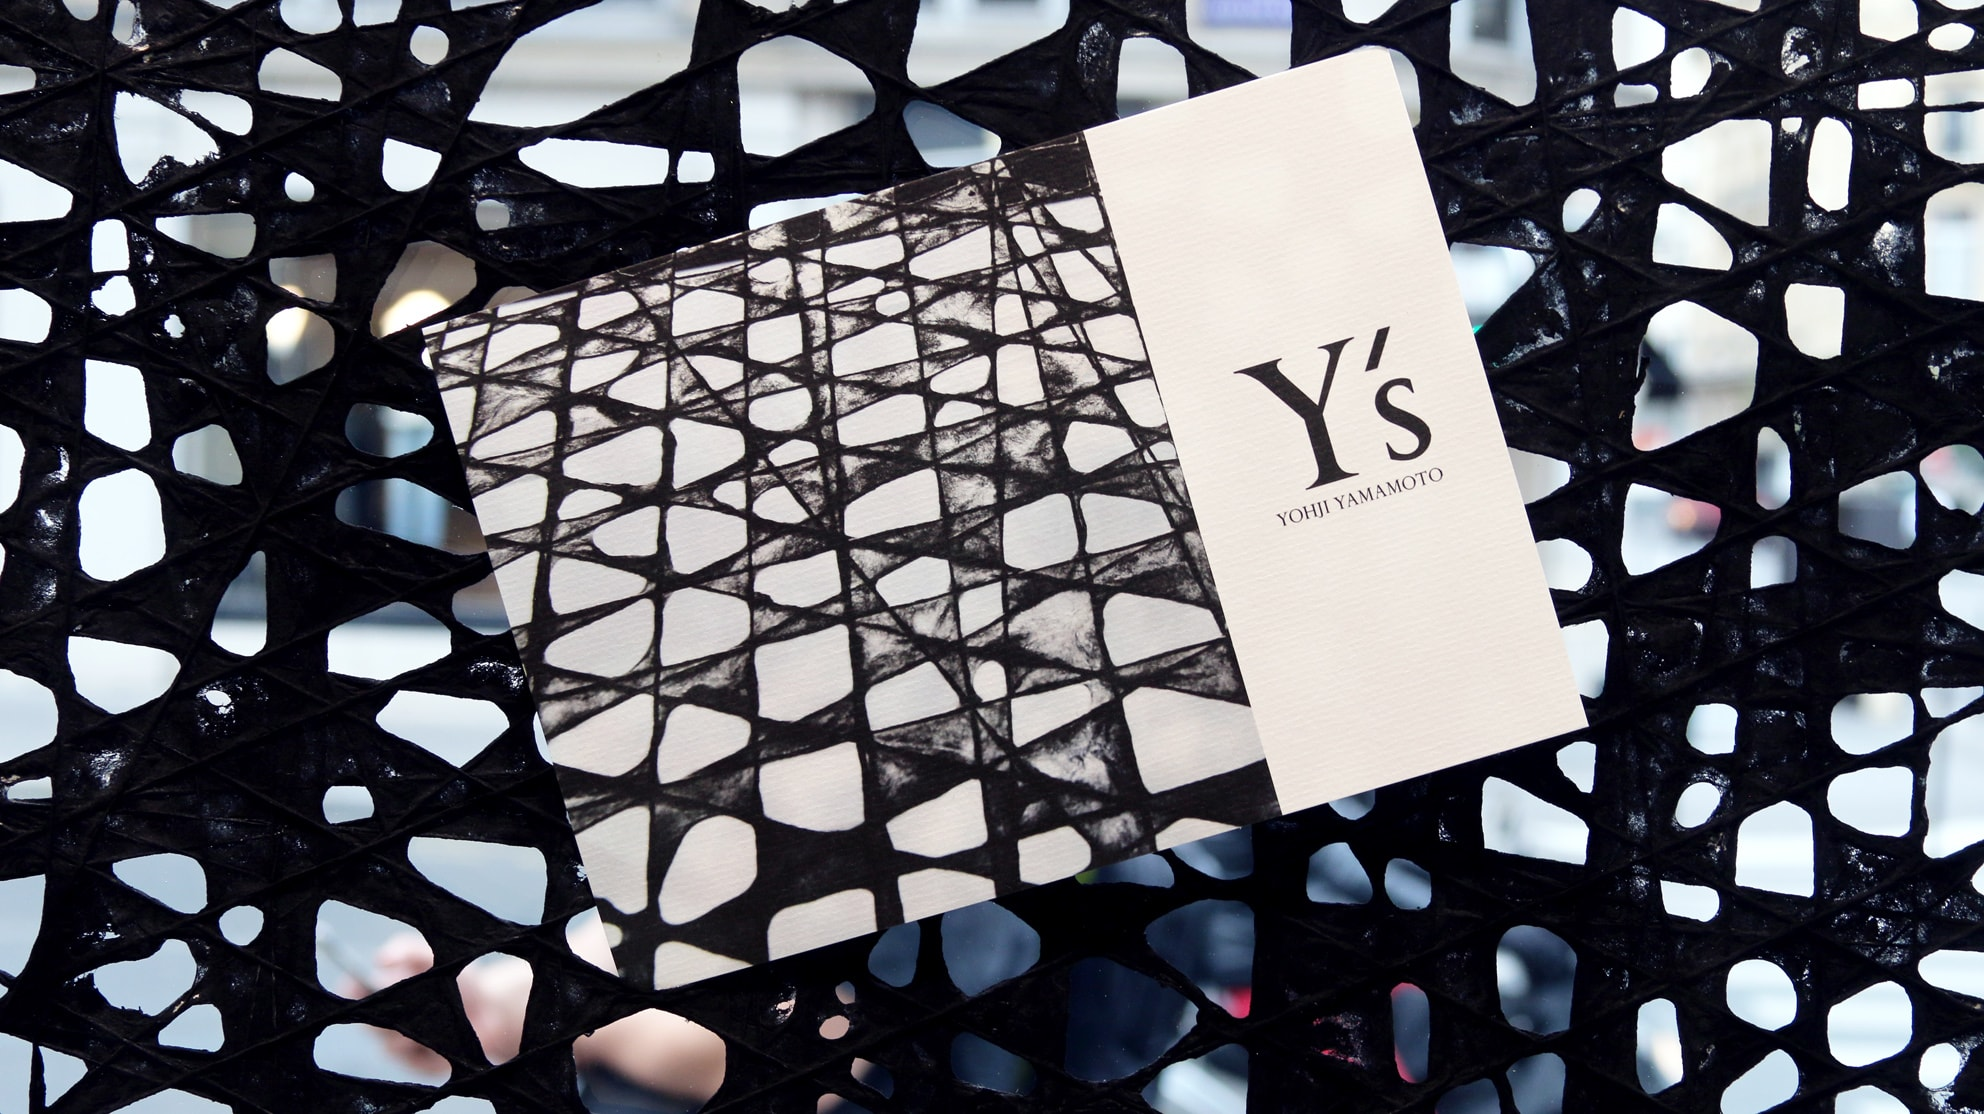 paris design week y s yohji yamamoto parcours papier text by runzhou sun a shaded view on. Black Bedroom Furniture Sets. Home Design Ideas